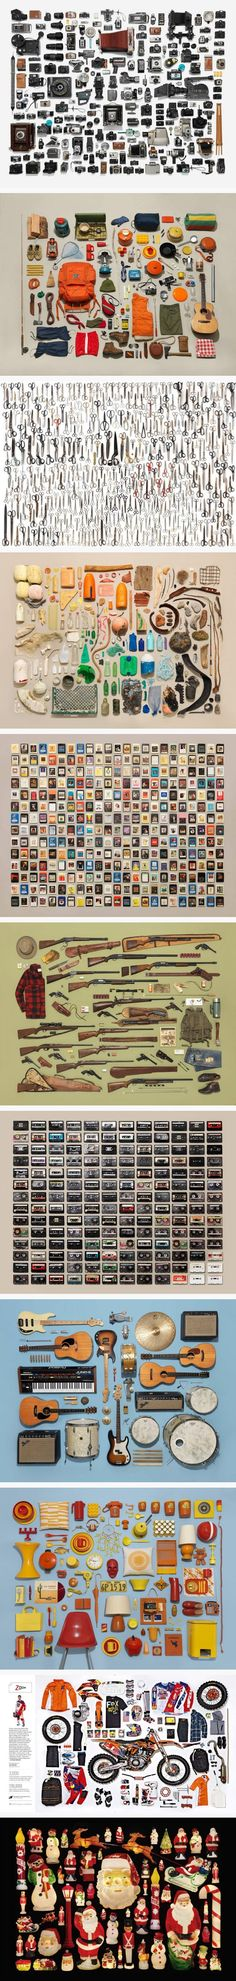 Collections Organized in Shocking Abundance by photographer Jim Golden and Kristin Lane